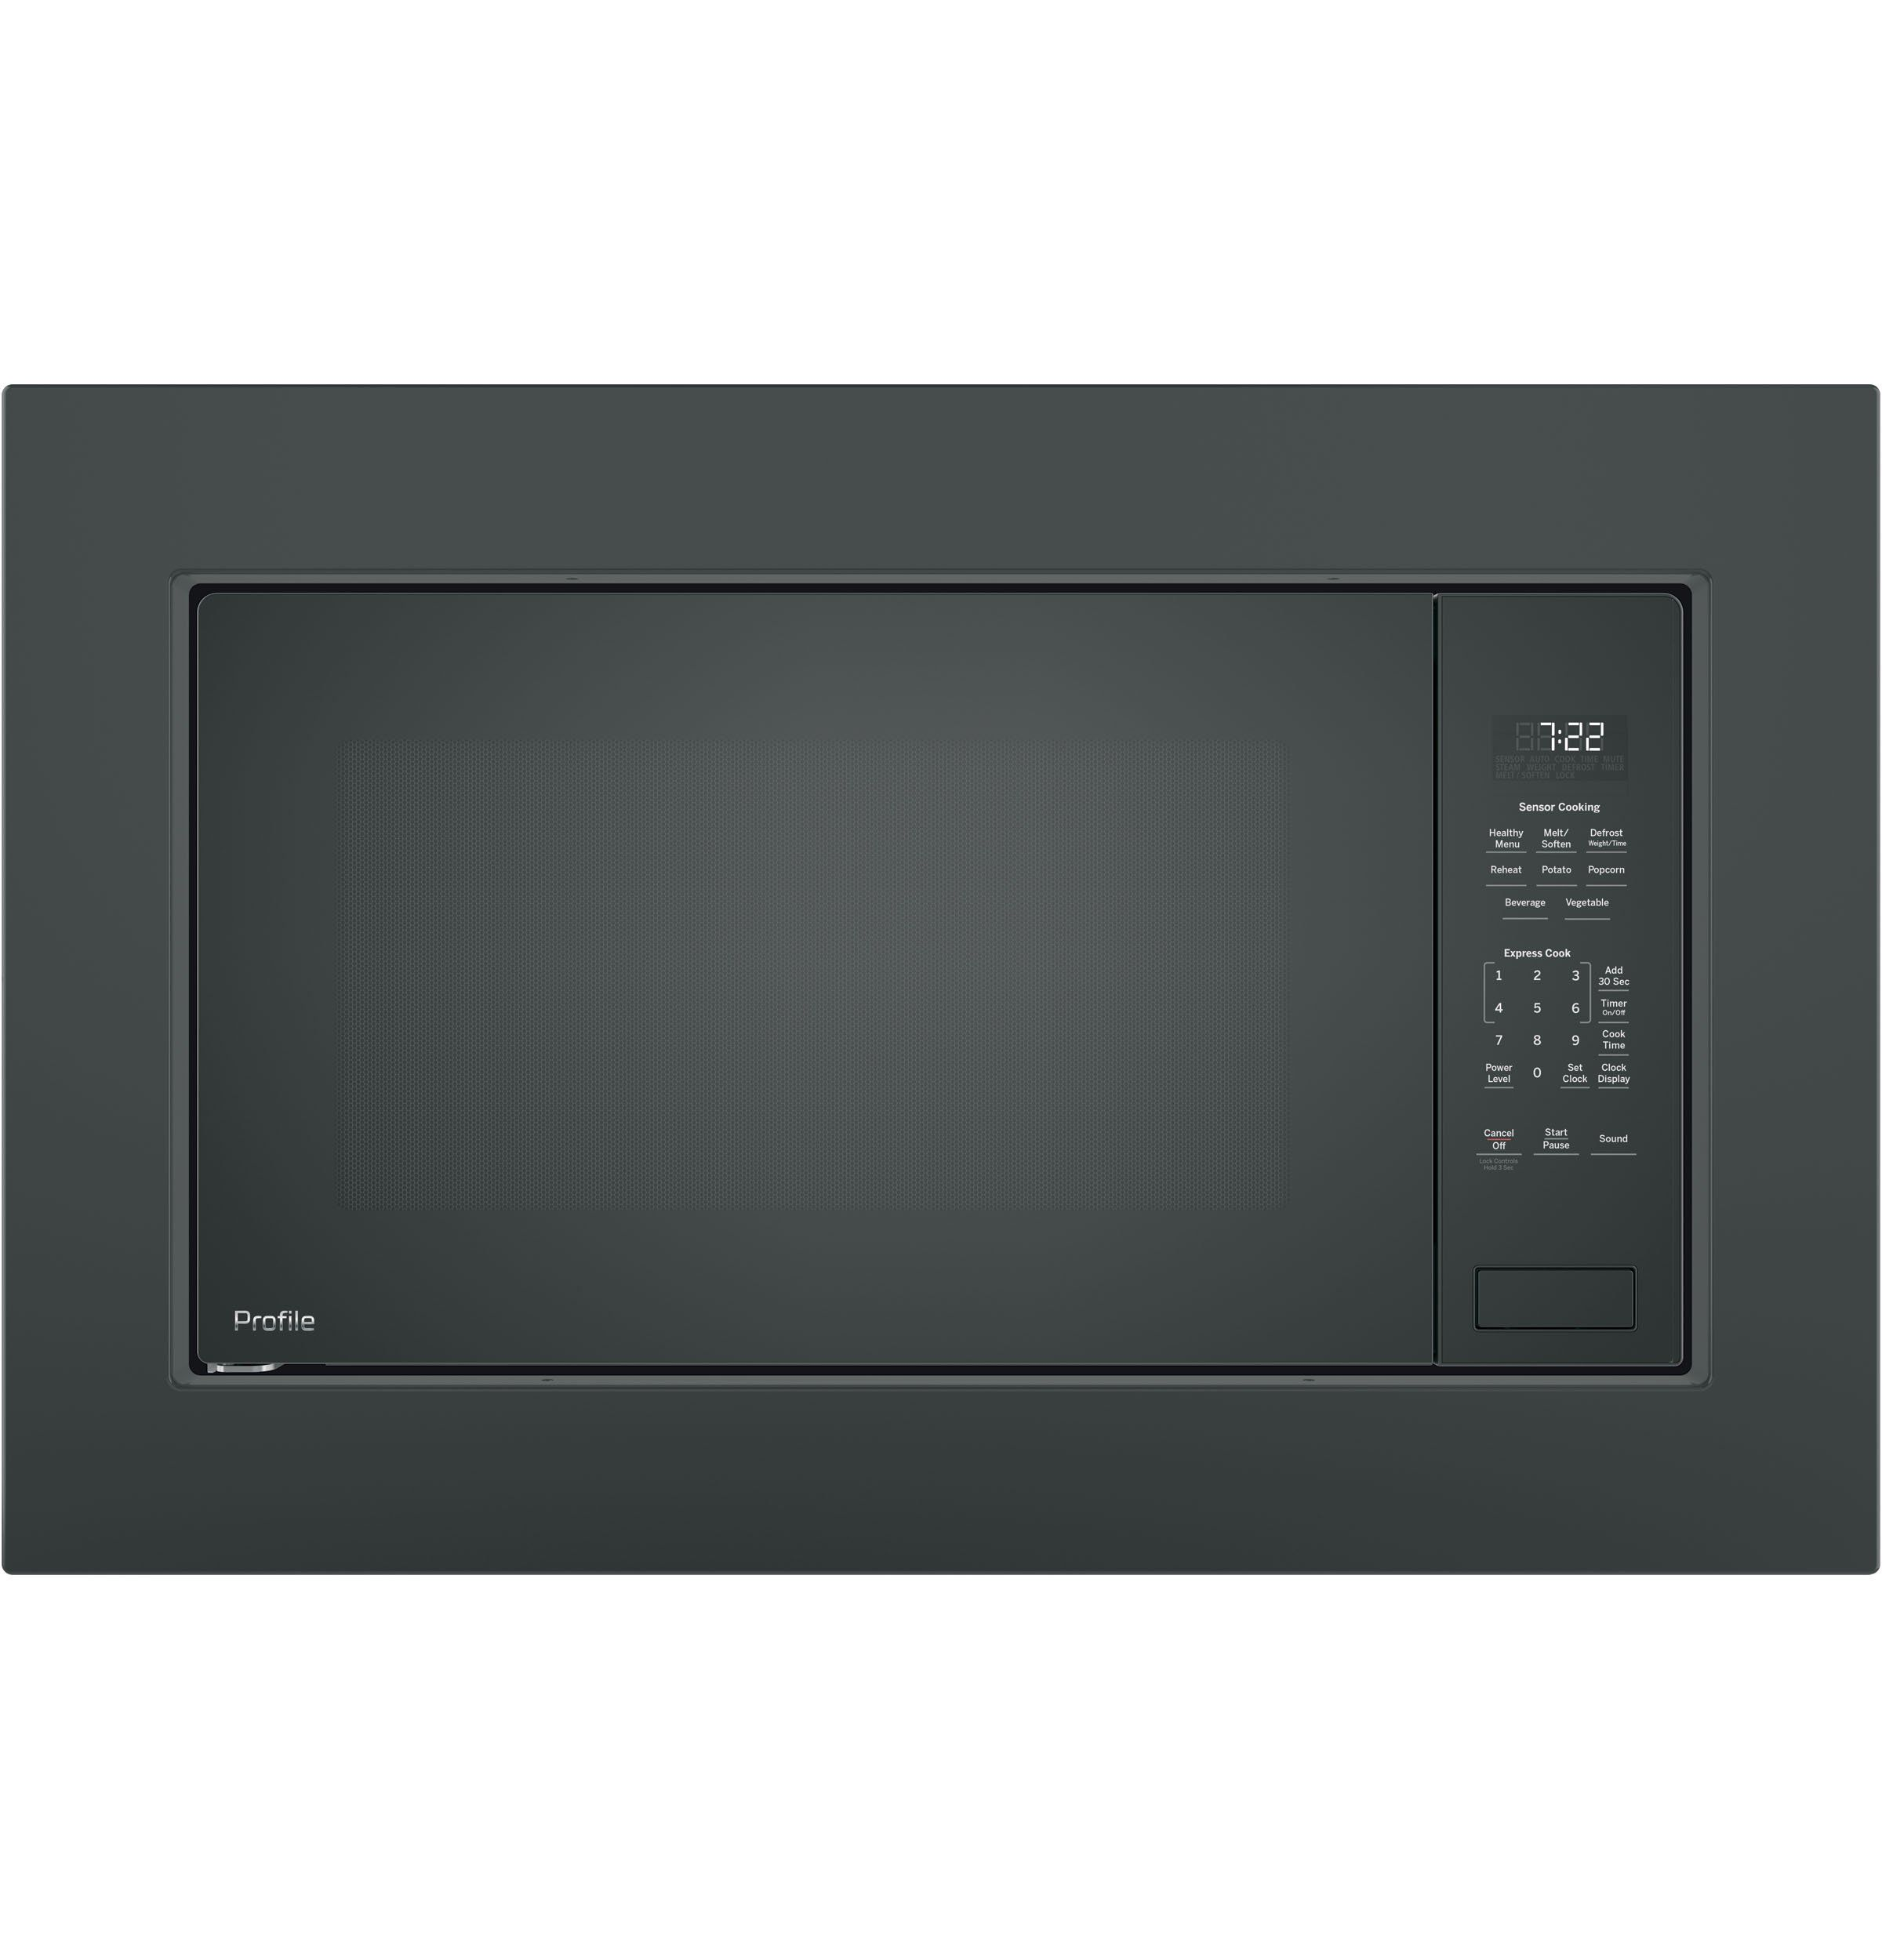 Ge Profile Countertop Microwave 2 2 Cu Ft Black Stainless